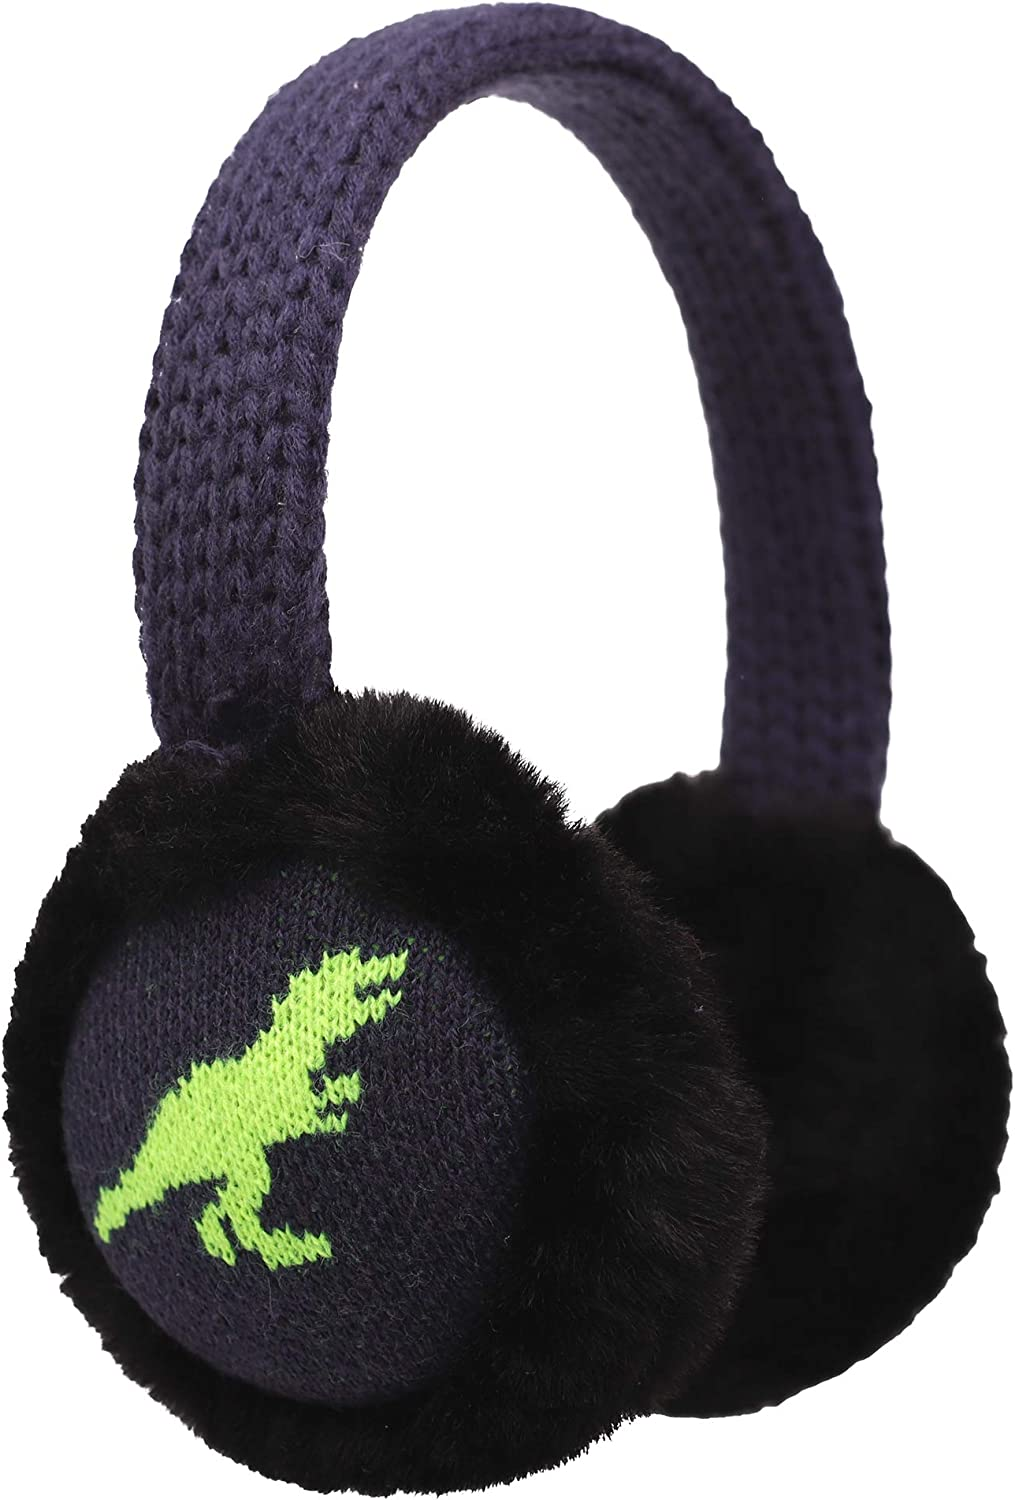 Flammi Kids Knit Earmuffs Winter Outdoor Furry Ear Warmers for...